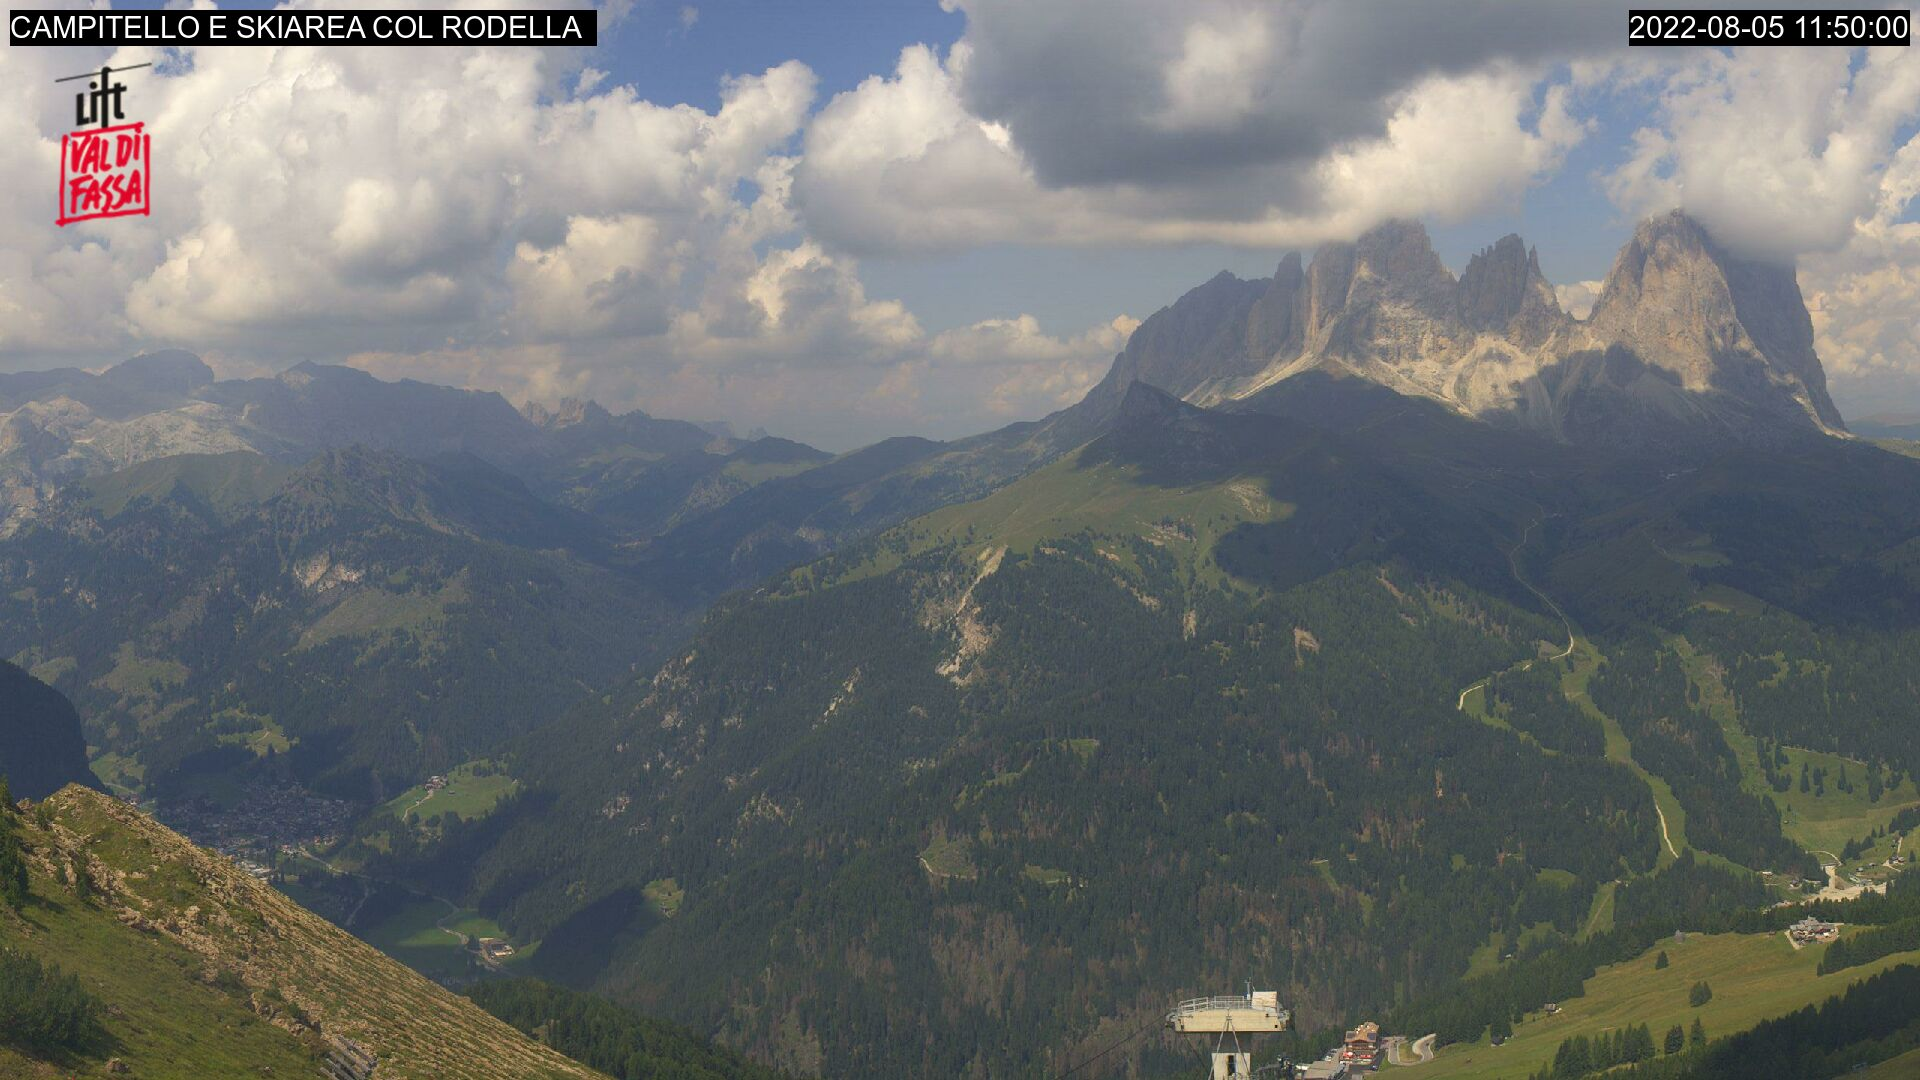 Webcam Campitello di Fassa - Col Rodella - Sassolungo - Altitude: 2,413 metresArea: Col dei RossiPanoramic viewpoint: static webcam. View from the top station of the cable car